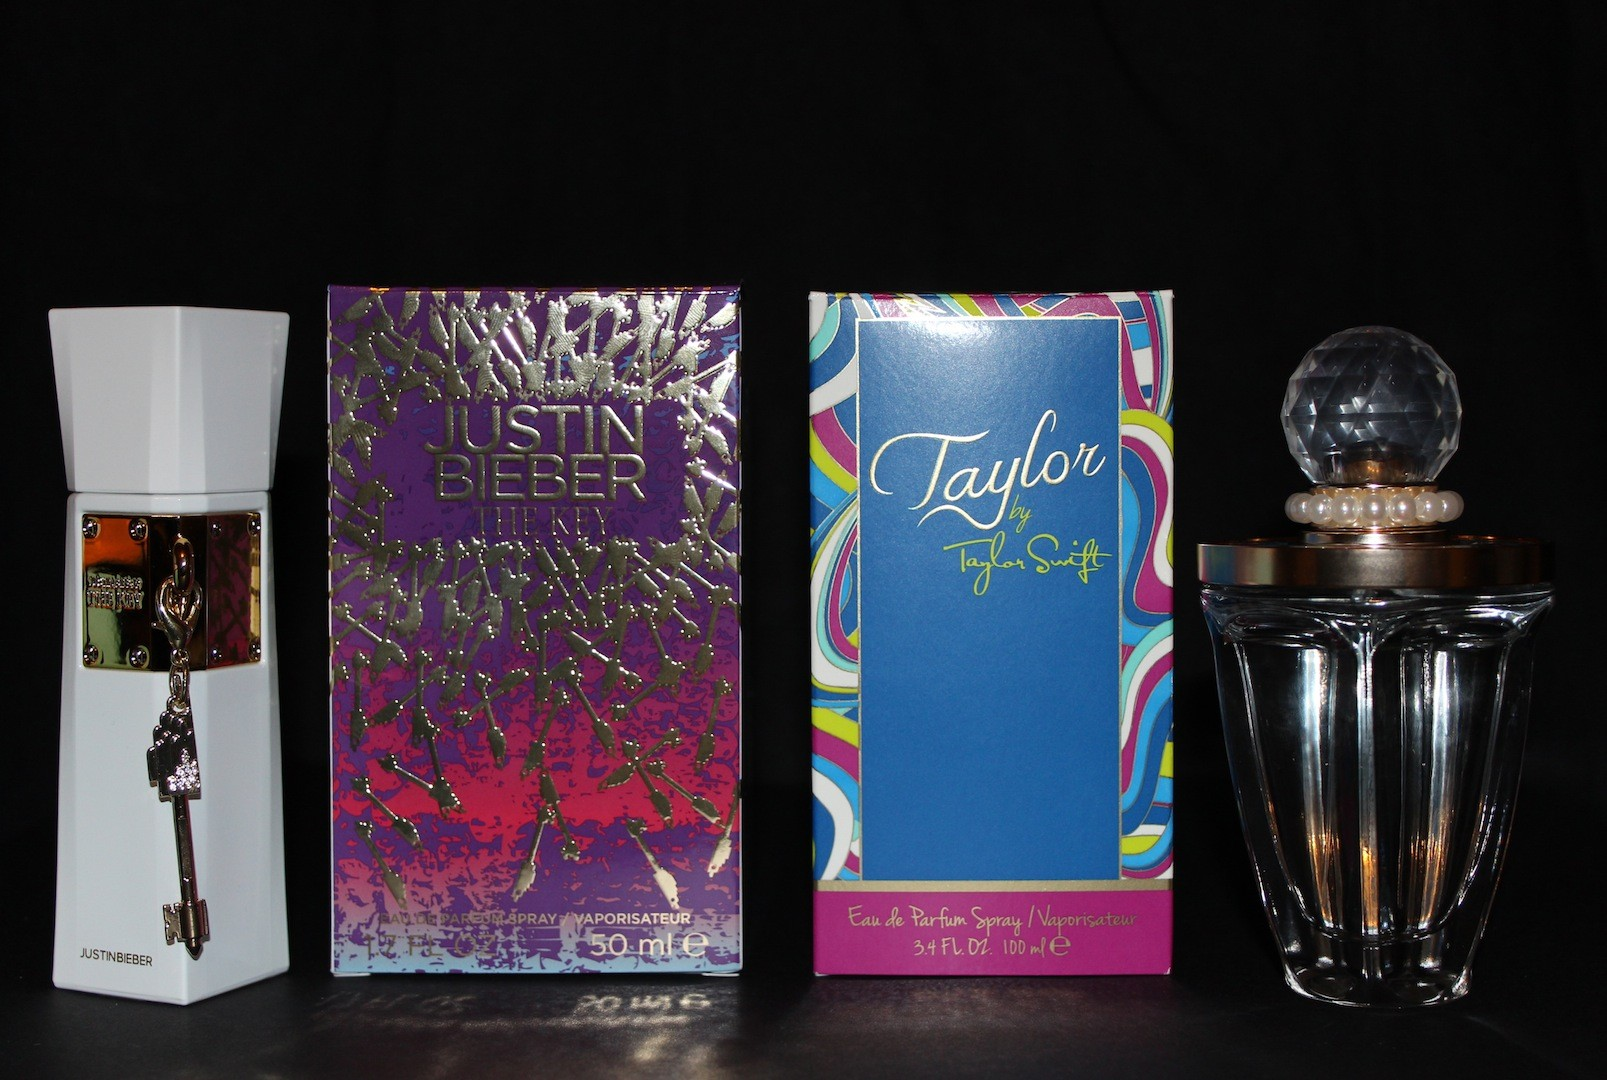 justin bieber, taylor swift, The key, Taylor, perfume, fragrance, Justin Bieber perfume, taylor swift perfume, beauty, cosmetics, Elizabeth Arden, Tina White, beauty blog nz, fashion blog nz, style blog nz, beauty media nz, fashion media nz, angie fredatovich, gurlinterrupted